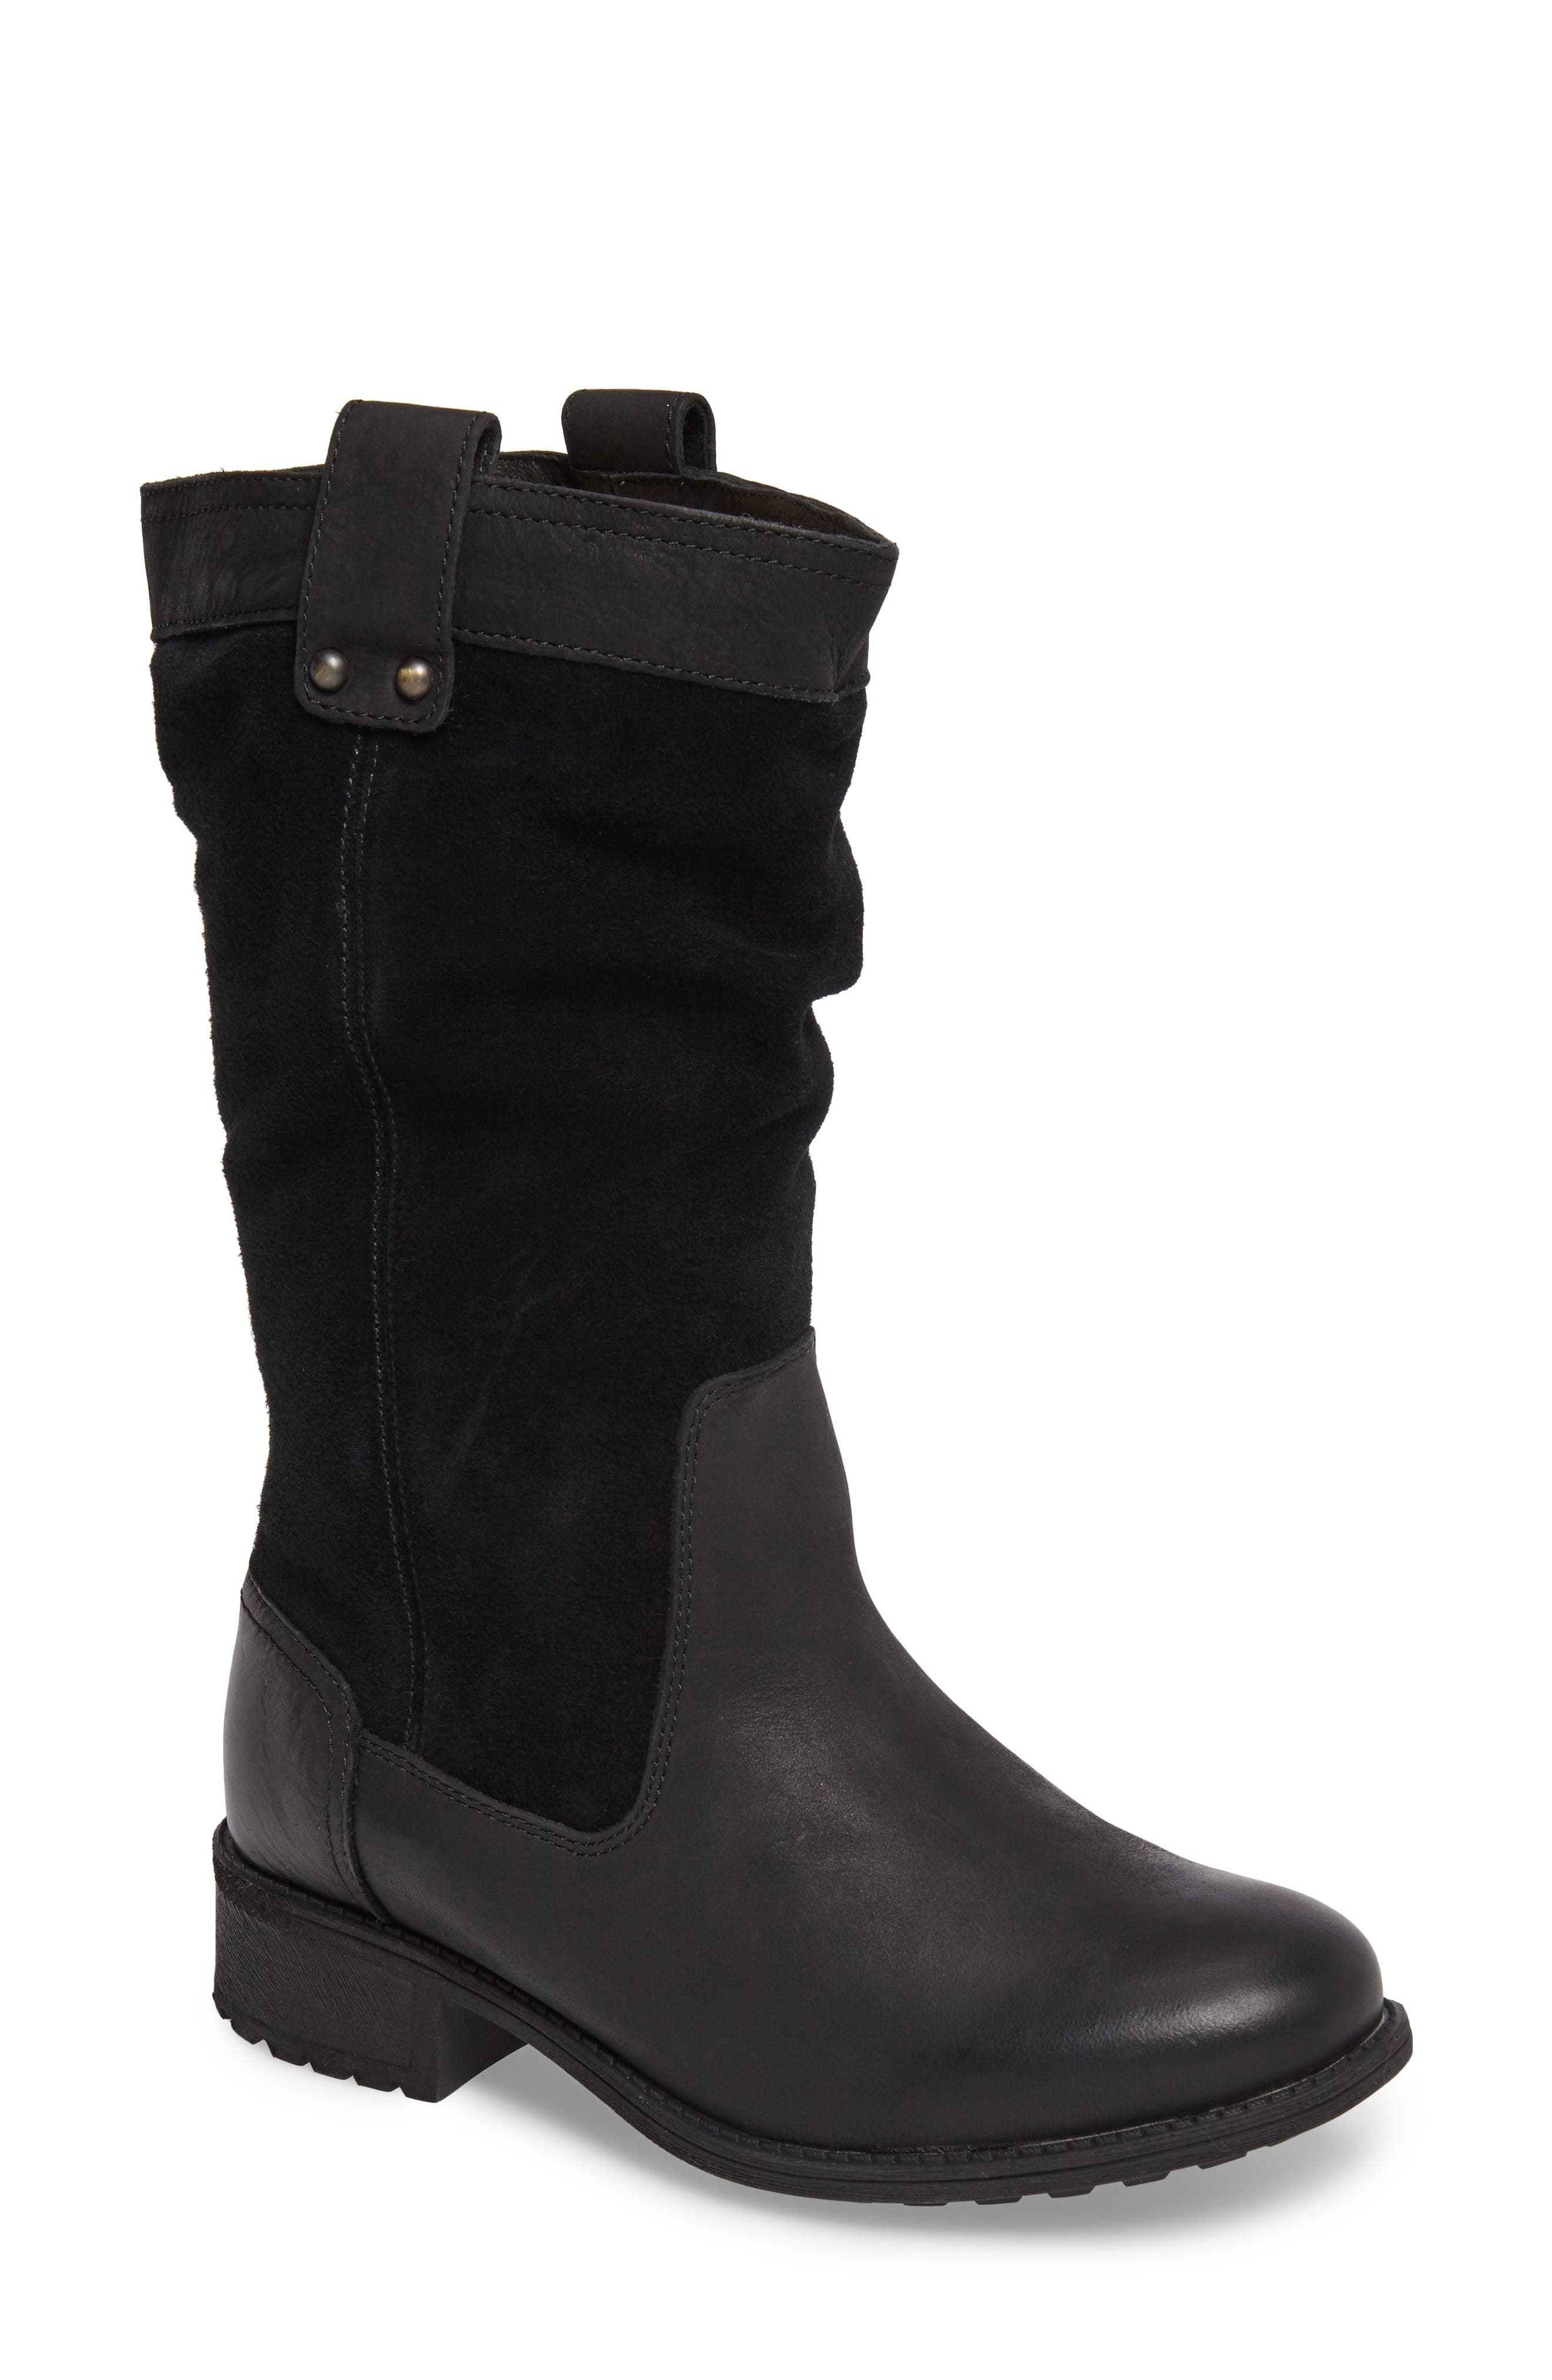 Bruckner Water Resistant Slouch Boot,                         Main,                         color, Black Leather